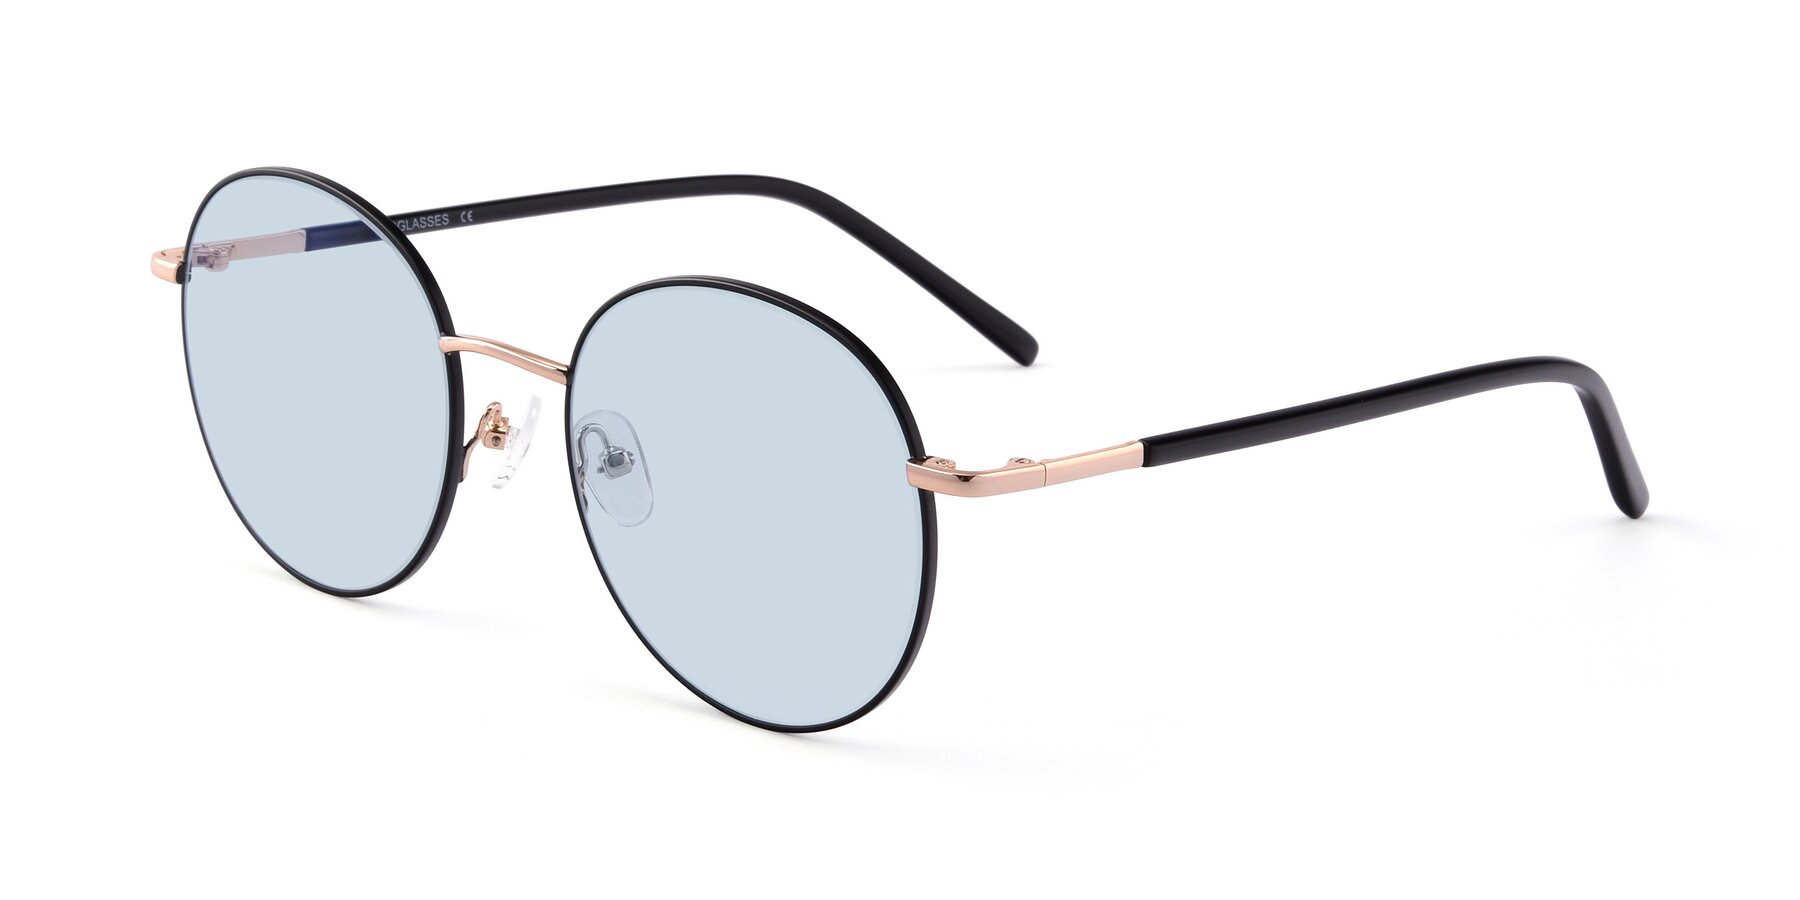 Angle of Cosmos in Black-Gold with Light Blue Tinted Lenses